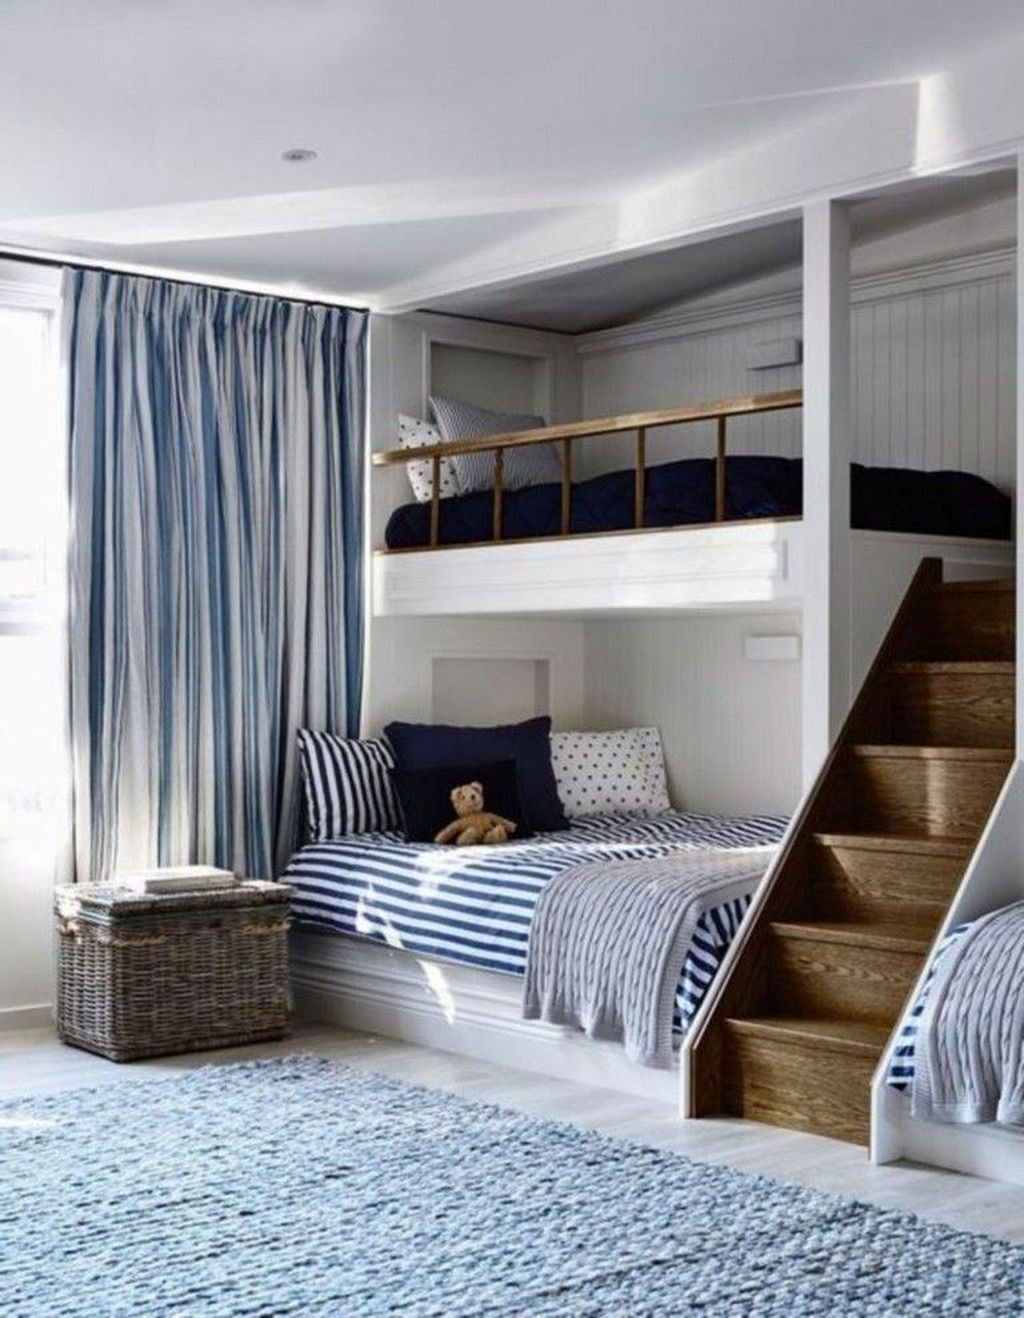 Amazing Attic Bedroom Design Ideas That You Will Like 35